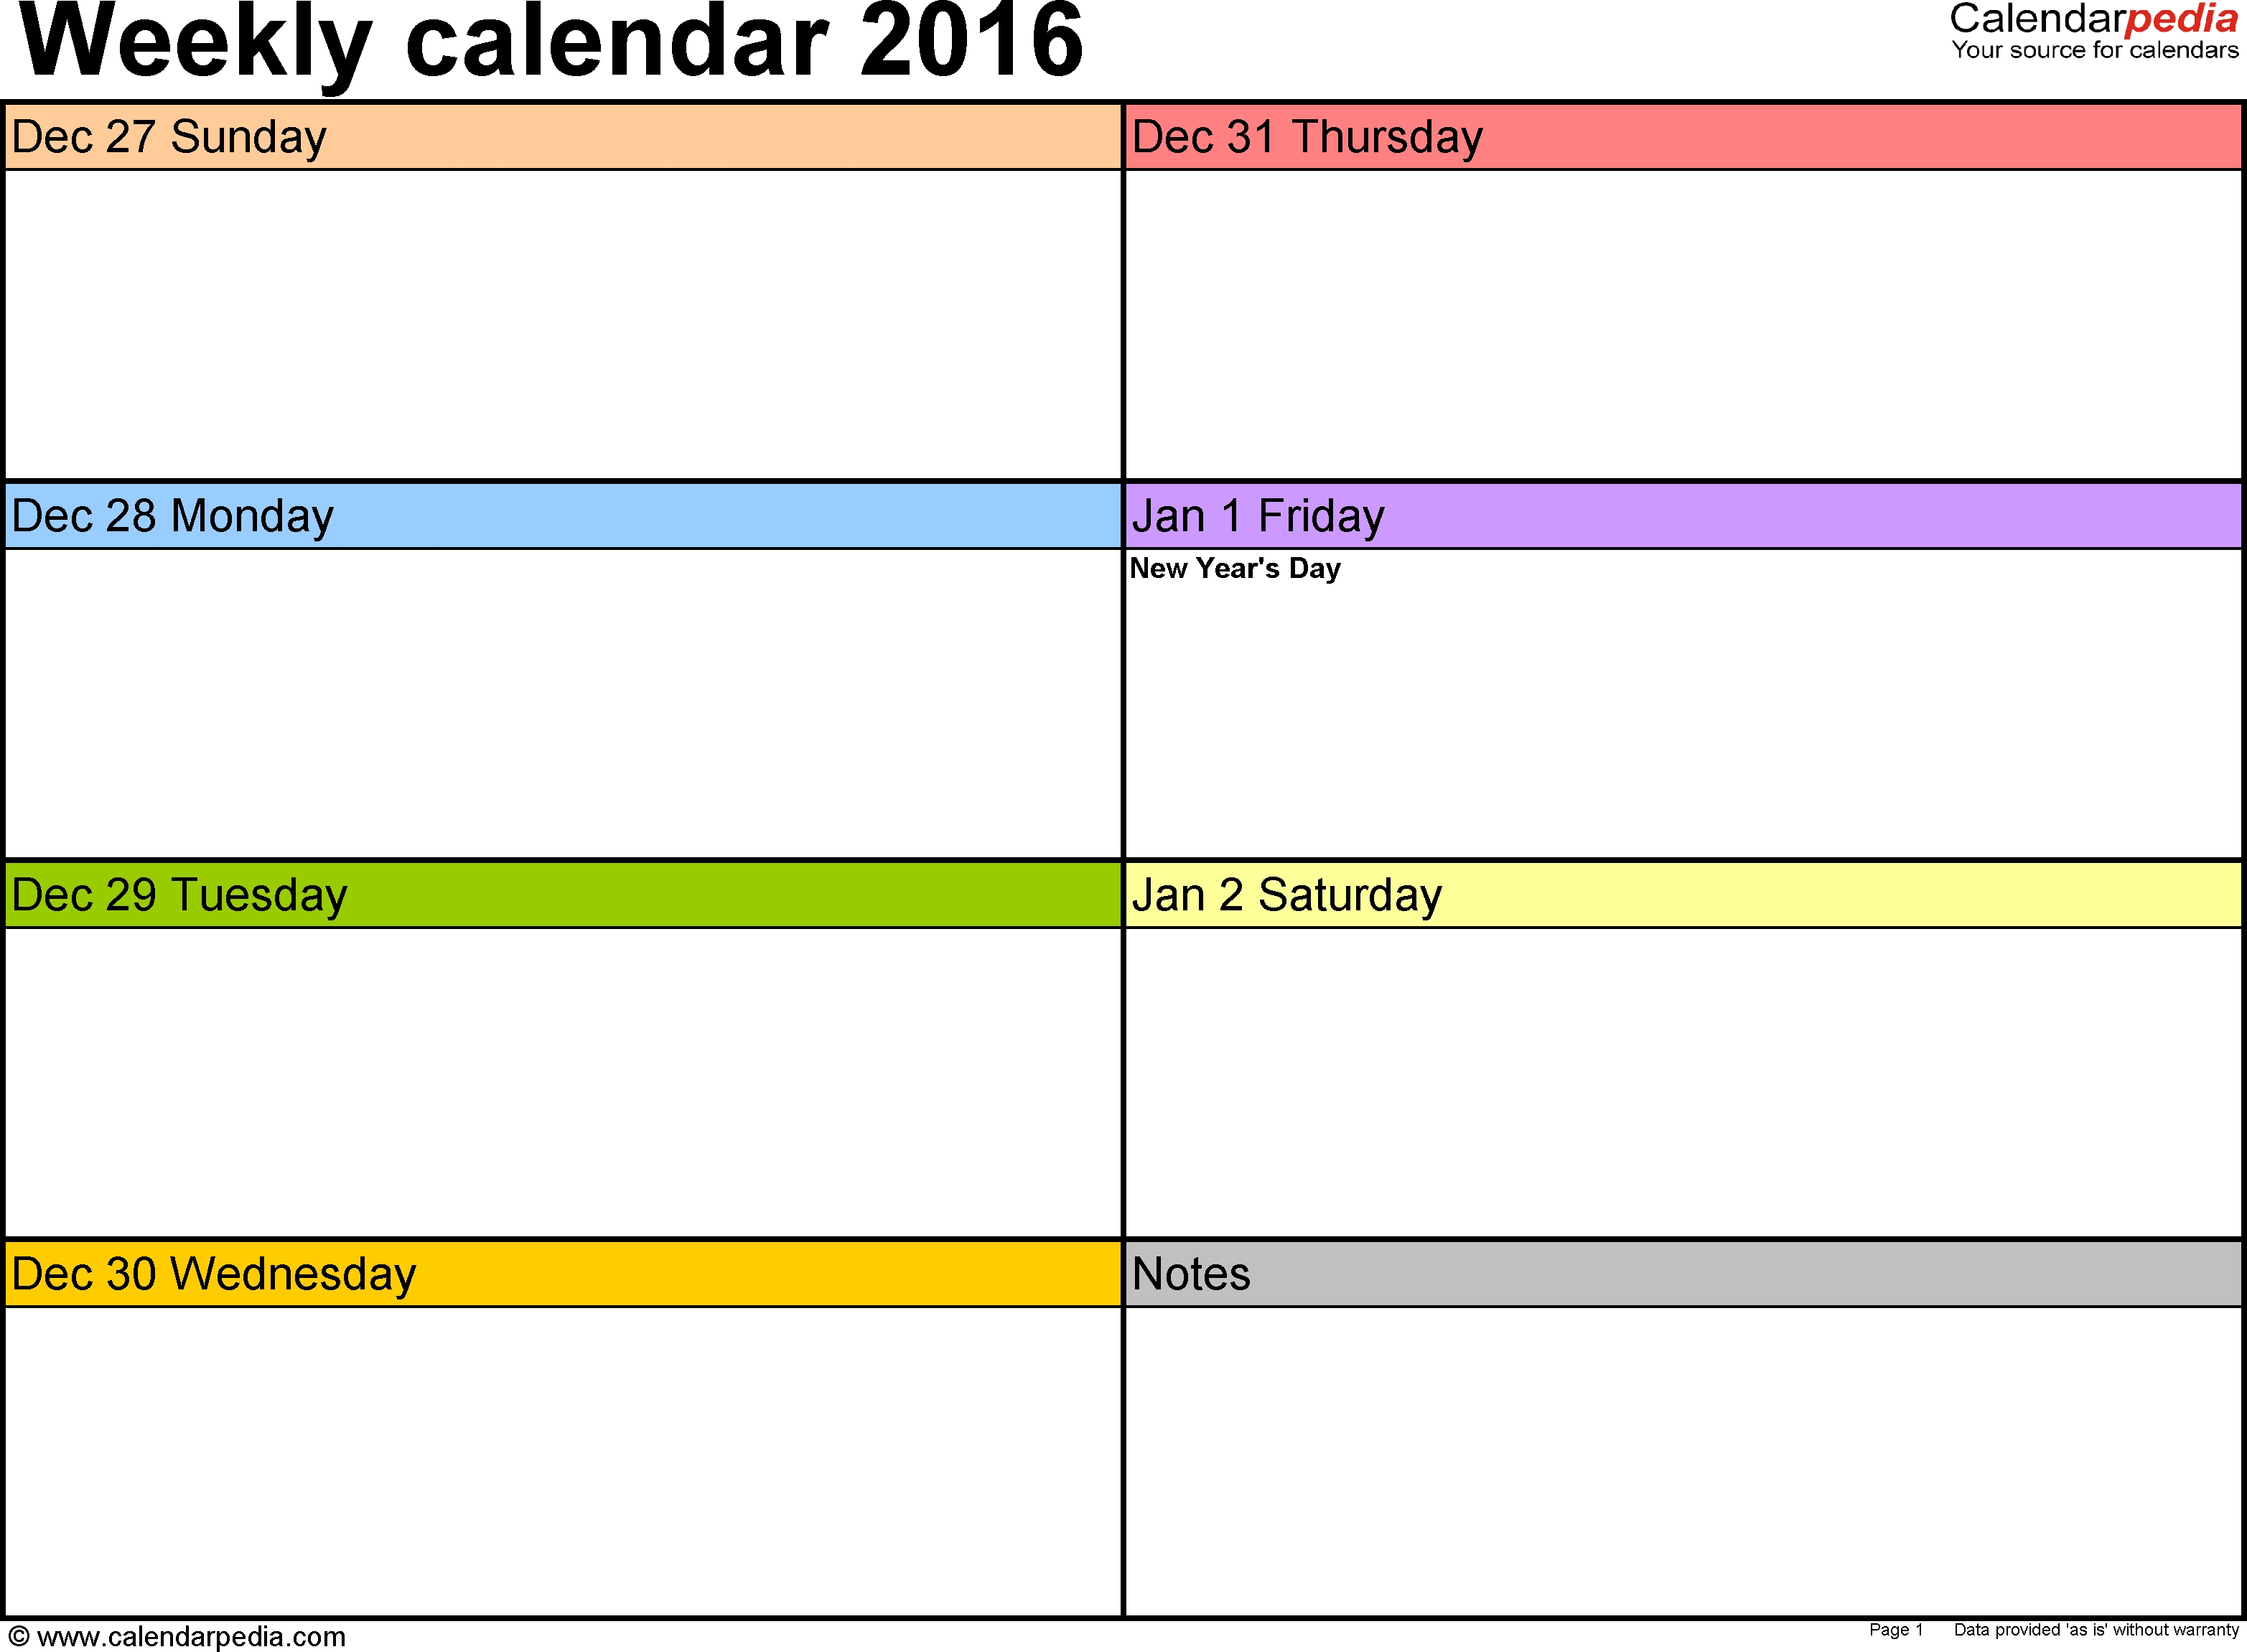 Weekly Calendar 2016 For Excel 12 Free Printable Templates